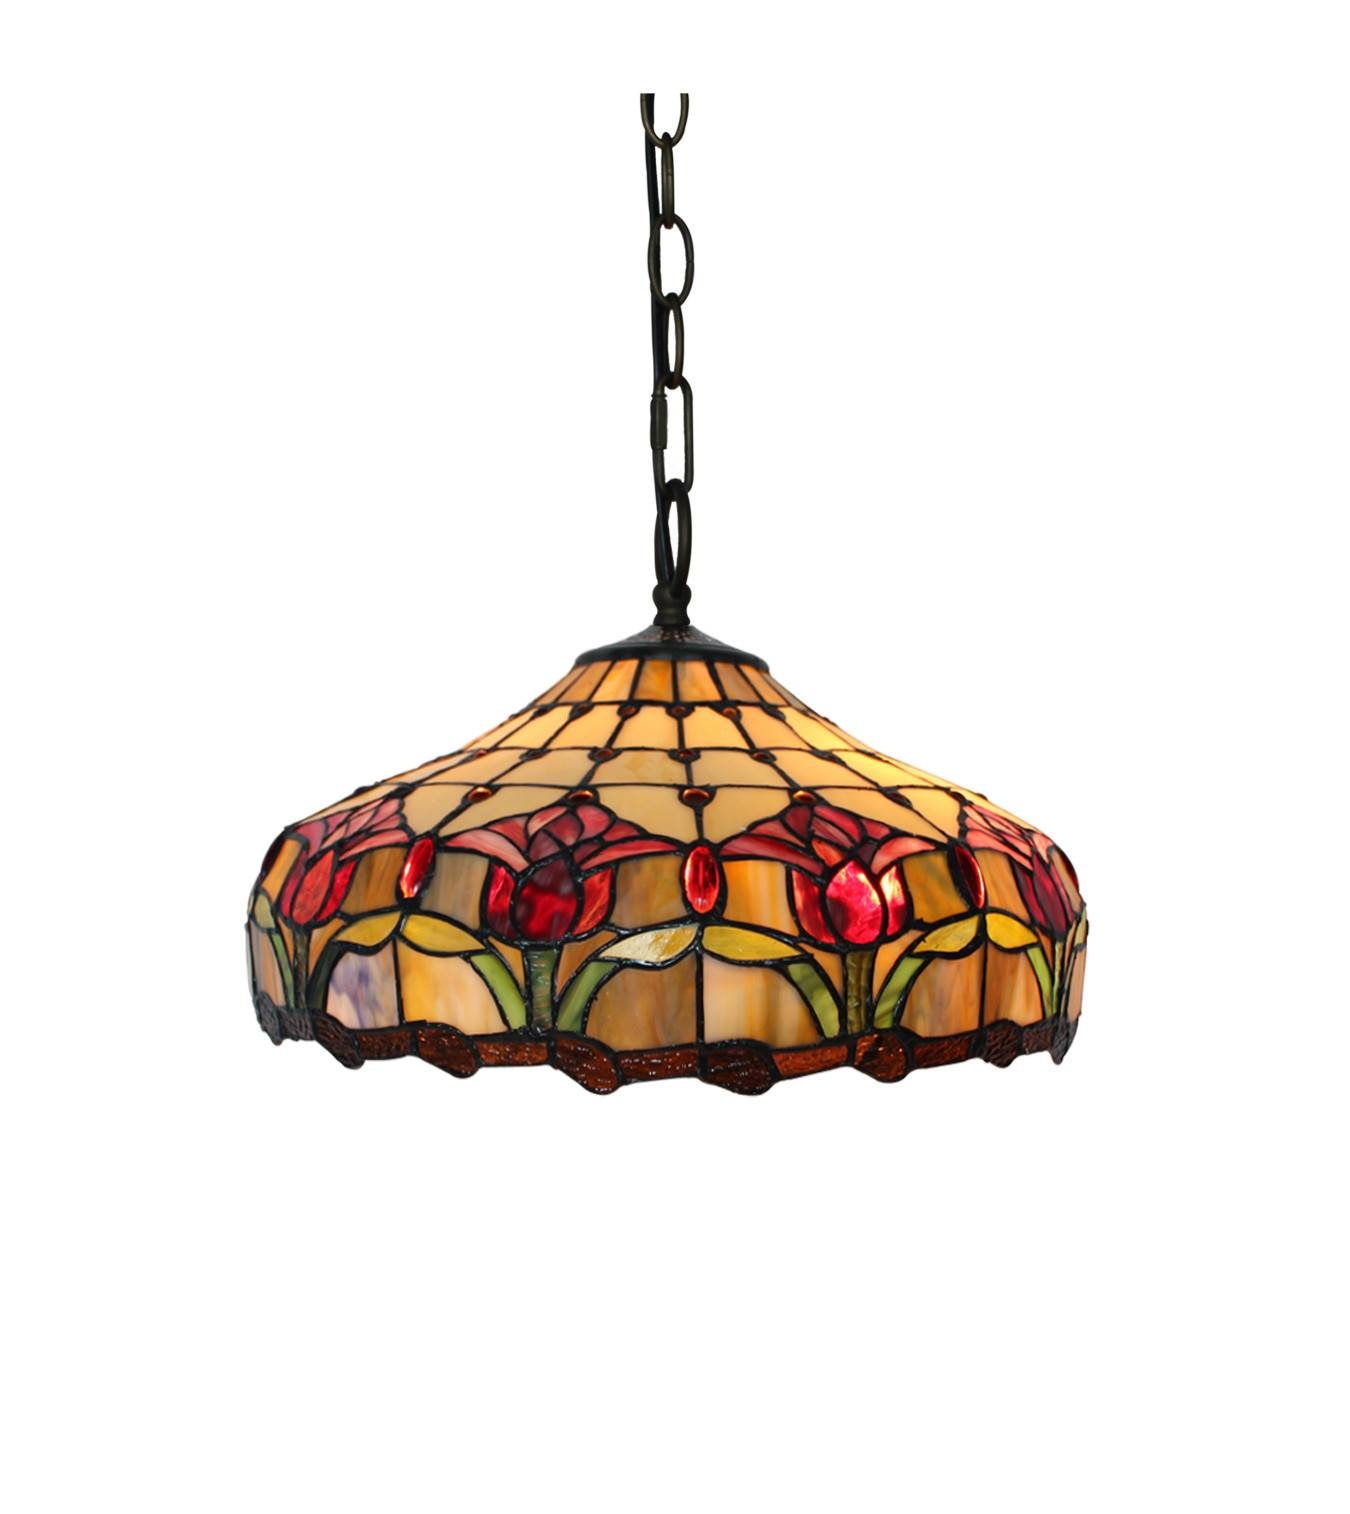 Tiffany Lighting | Temple & Webster Inside Coloured Glass Pendant Lights (View 15 of 15)